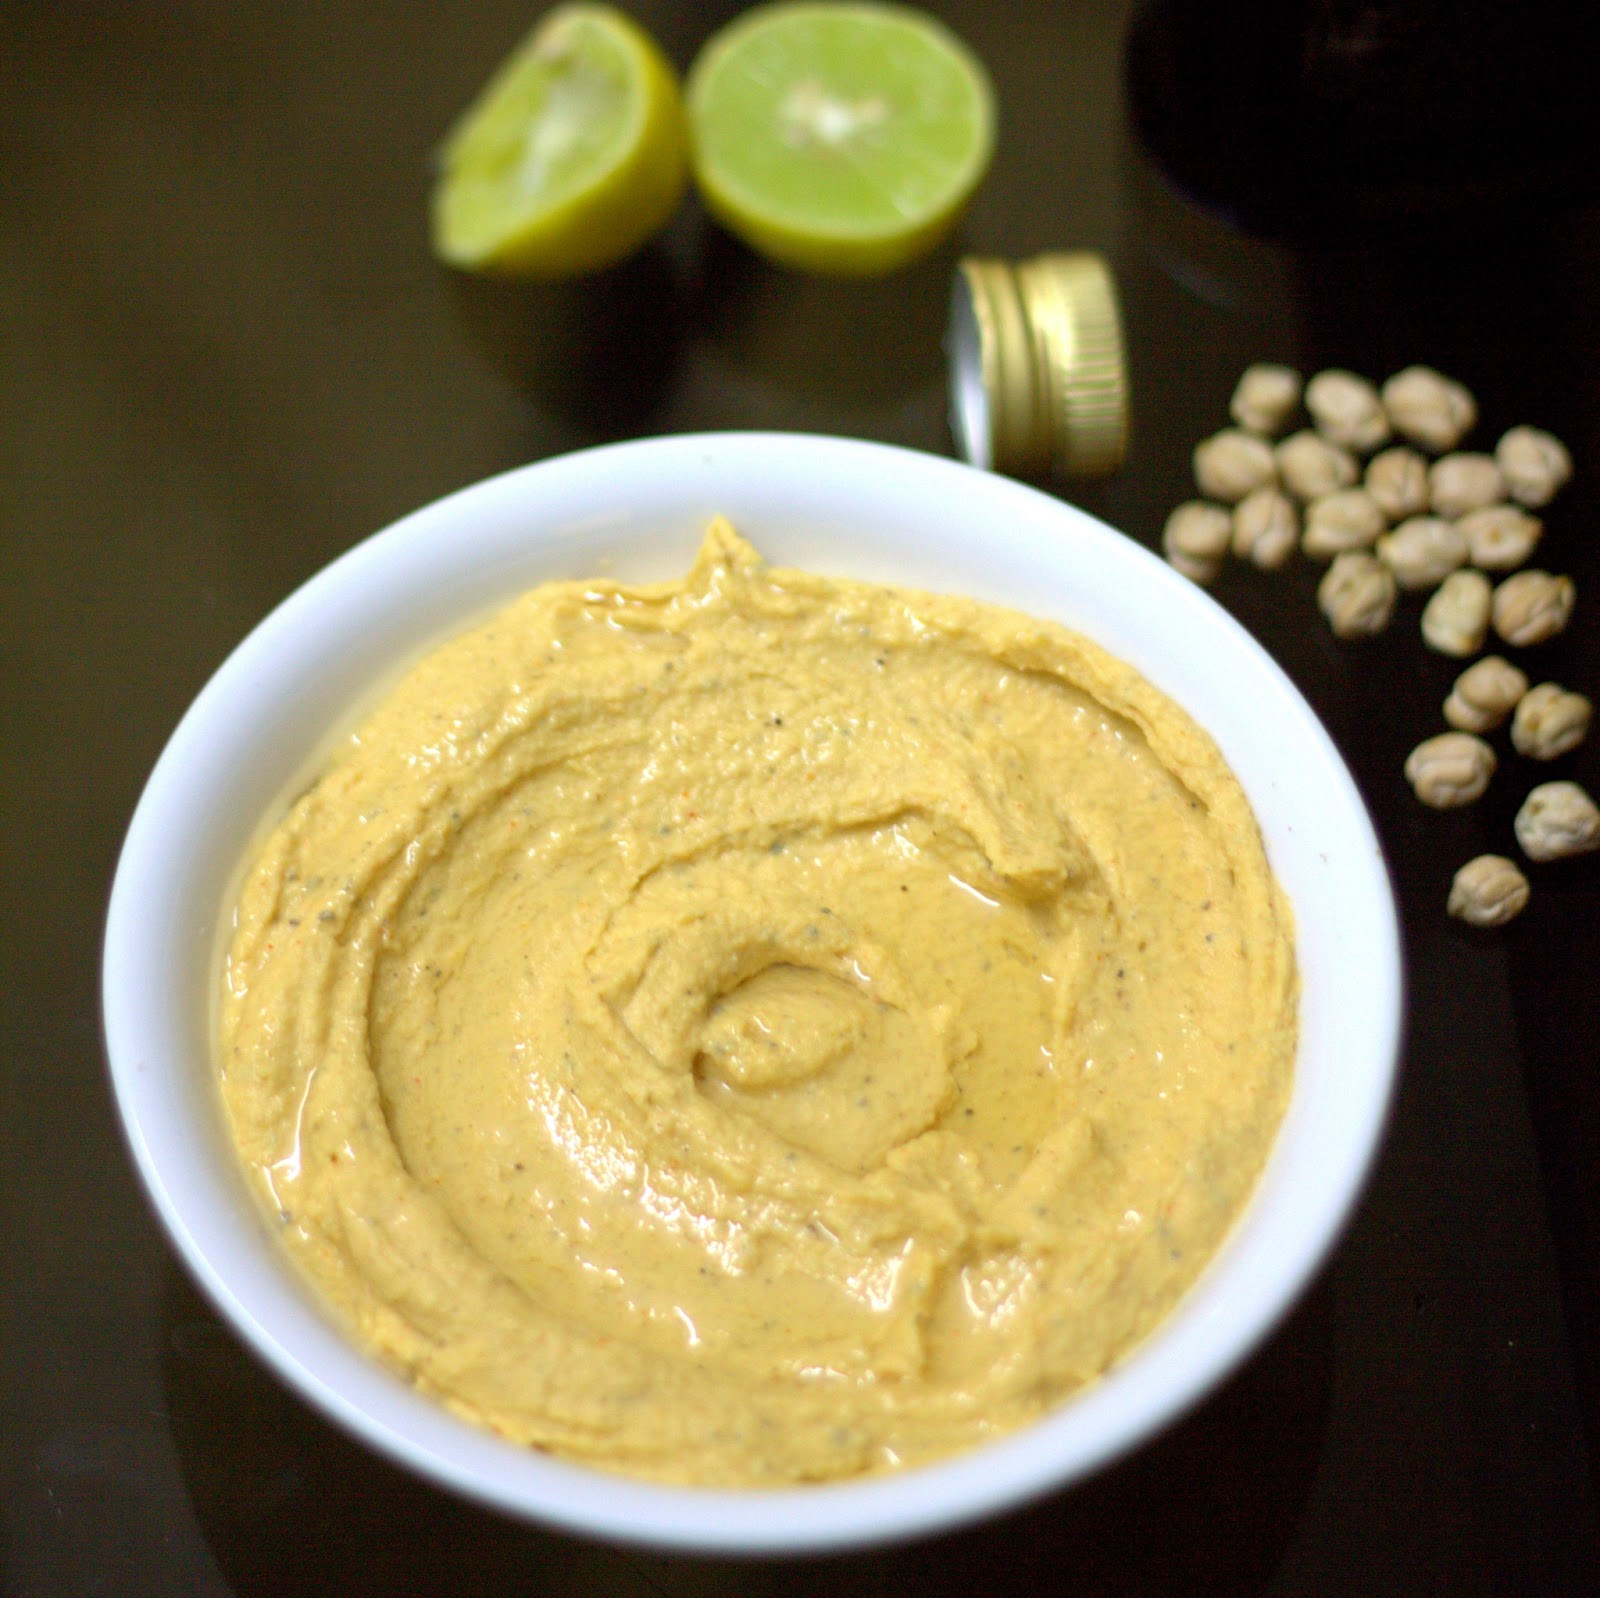 Hummus Without Tahini likewise Clan™« ♣ ♣ « ™Bang™D™ ™ « ⌂  Januari 2000 likewise Download Pan's Labyrinth  2006  1080p 5 1 BrRip X264 Judas Torrent furthermore Mes Yeux Ne Savaient Plus Où Reg Arder Tellement Il Y Avait Pleins De as well Grandes Garotas Adoram Futebol  Agosto 2010. on yxcqi